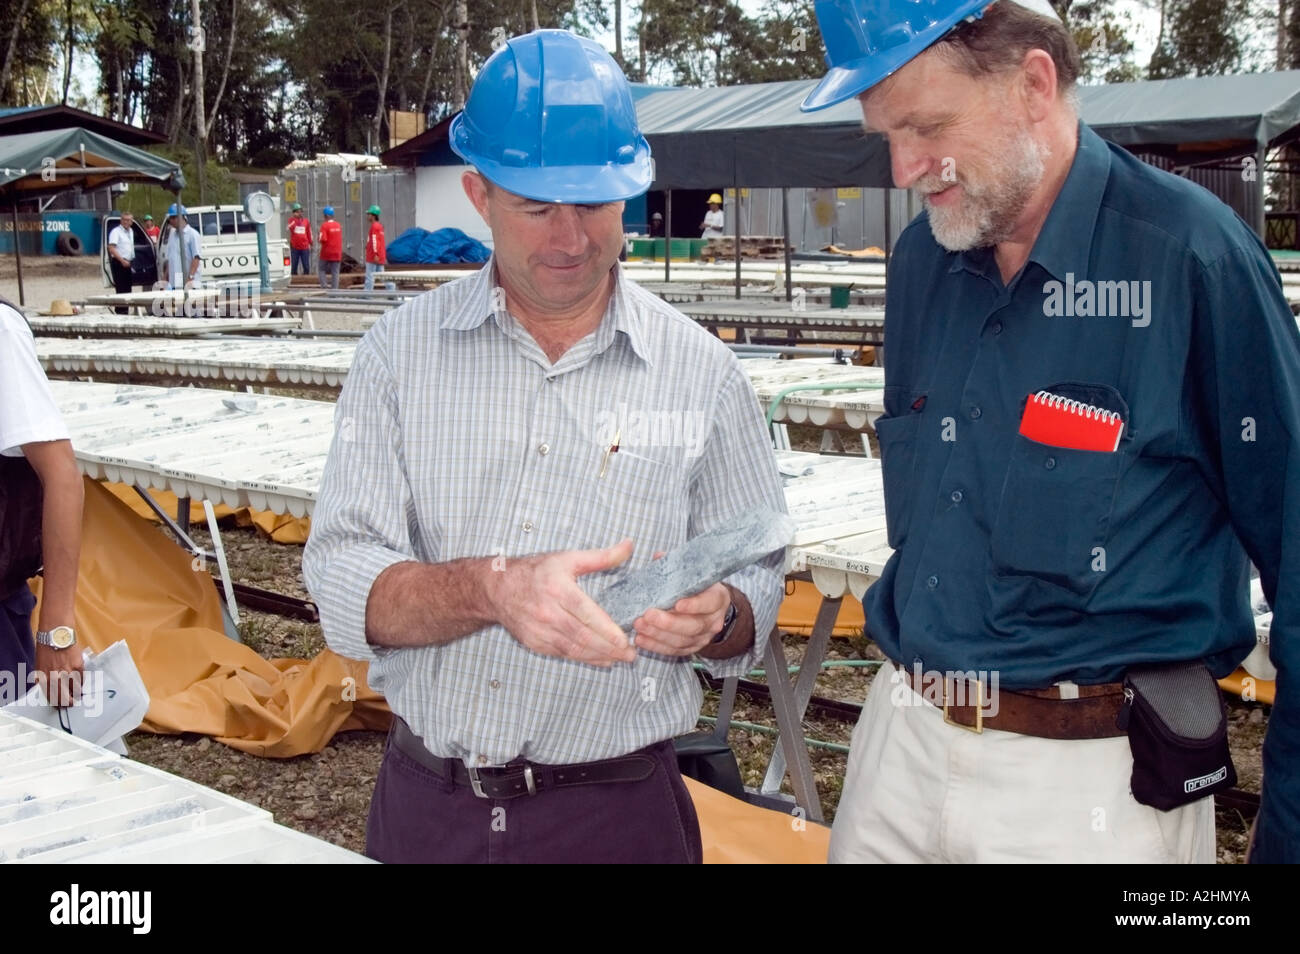 Australian mining co studies core samples from drilling world's largest copper mine, Tampakan, South Cotobato, Mindanao, Phils. - Stock Image